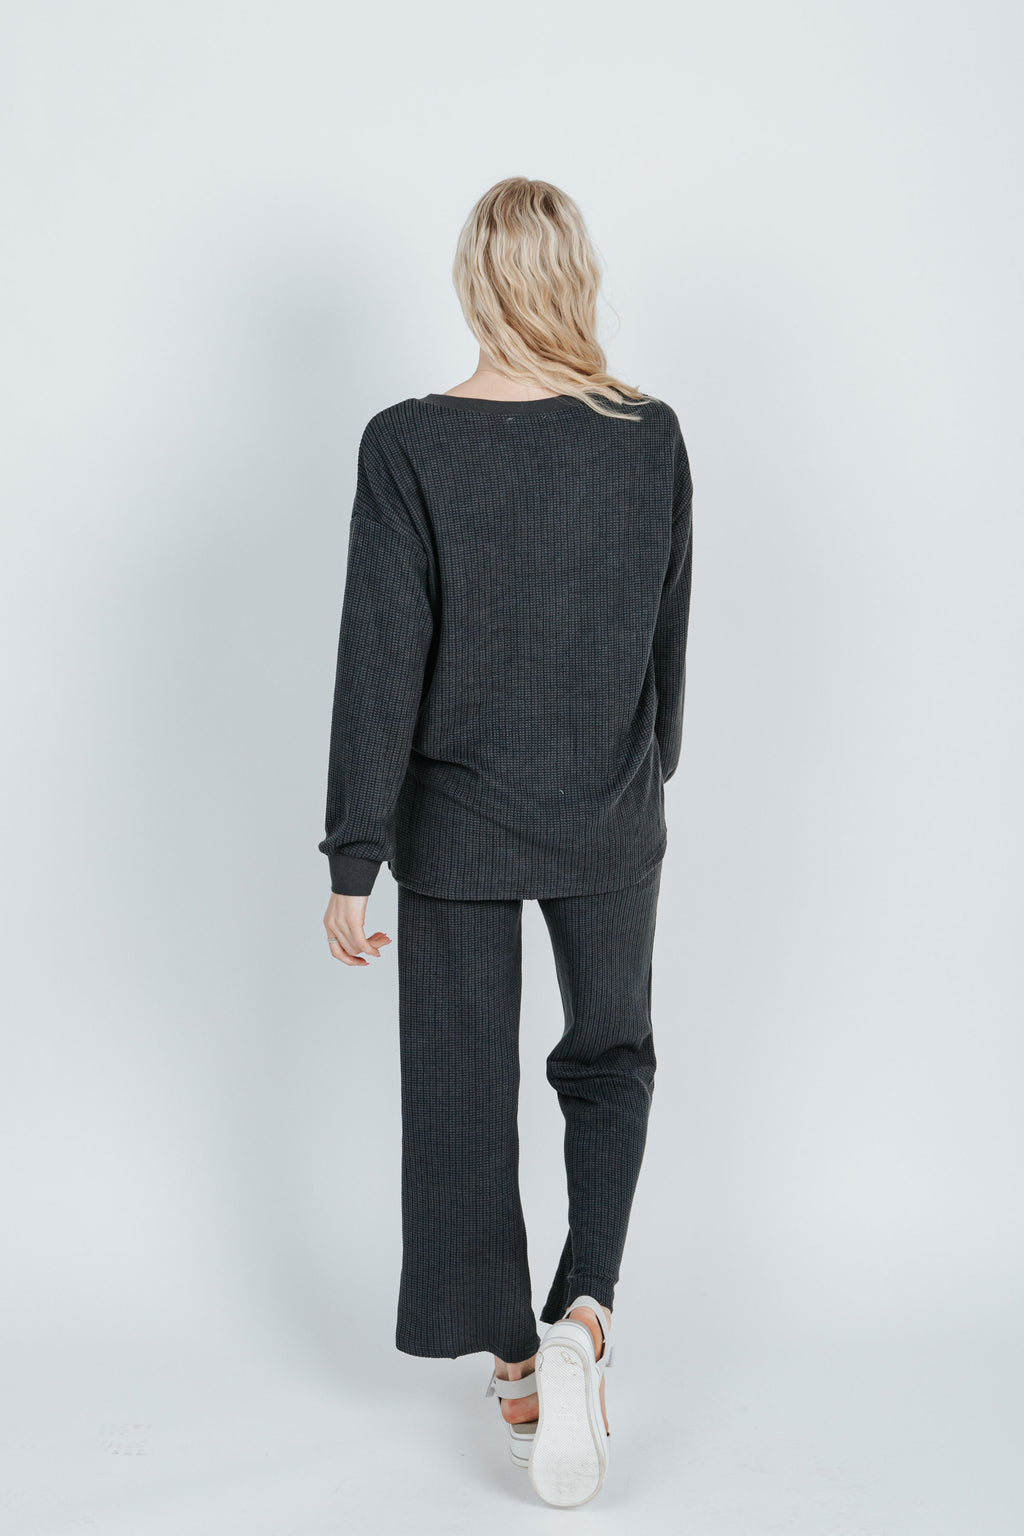 The Anderson Waffle Knit Set in Charcoal